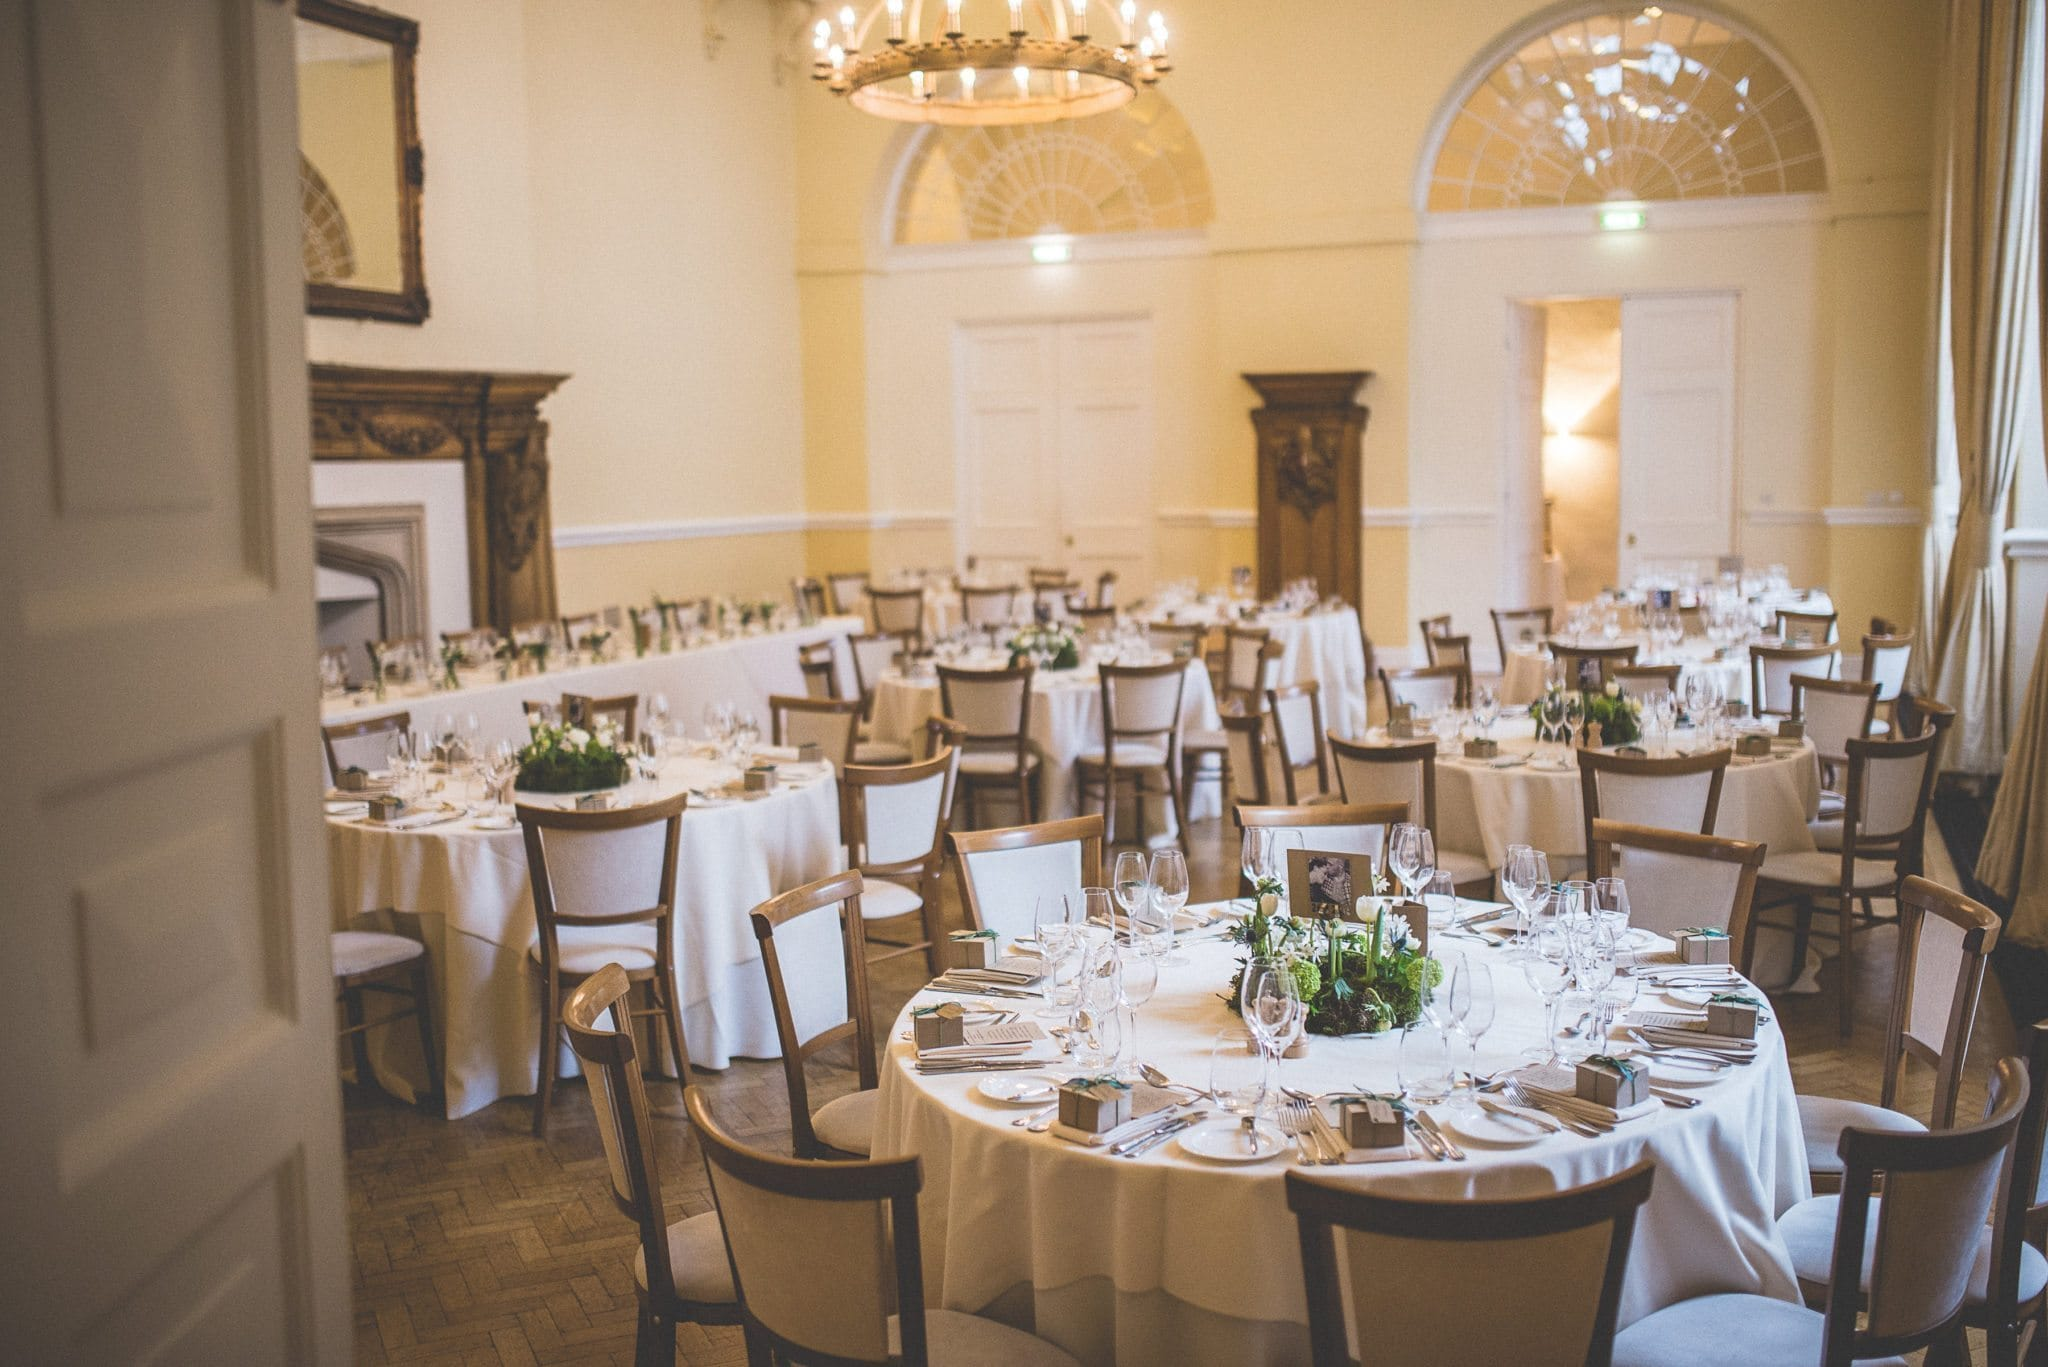 A shot through the door of the reception venue showing tables decorated with spring flowers and favours